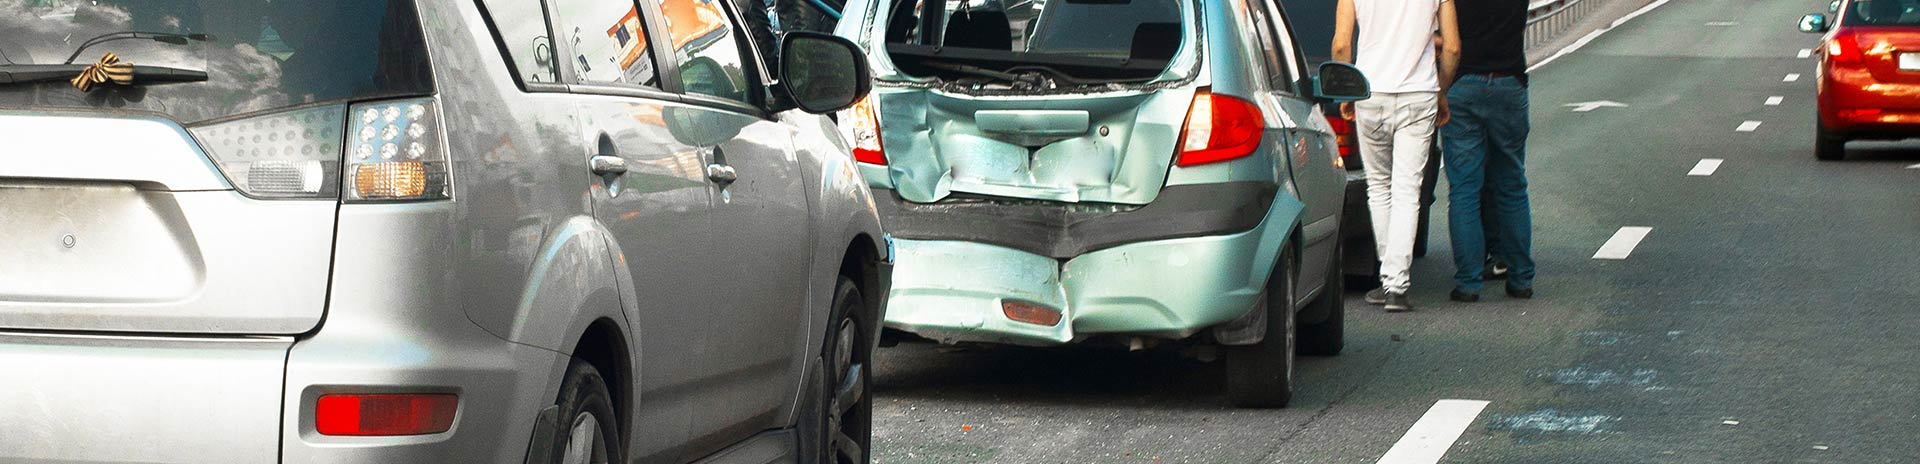 A rear-end collision car accident.